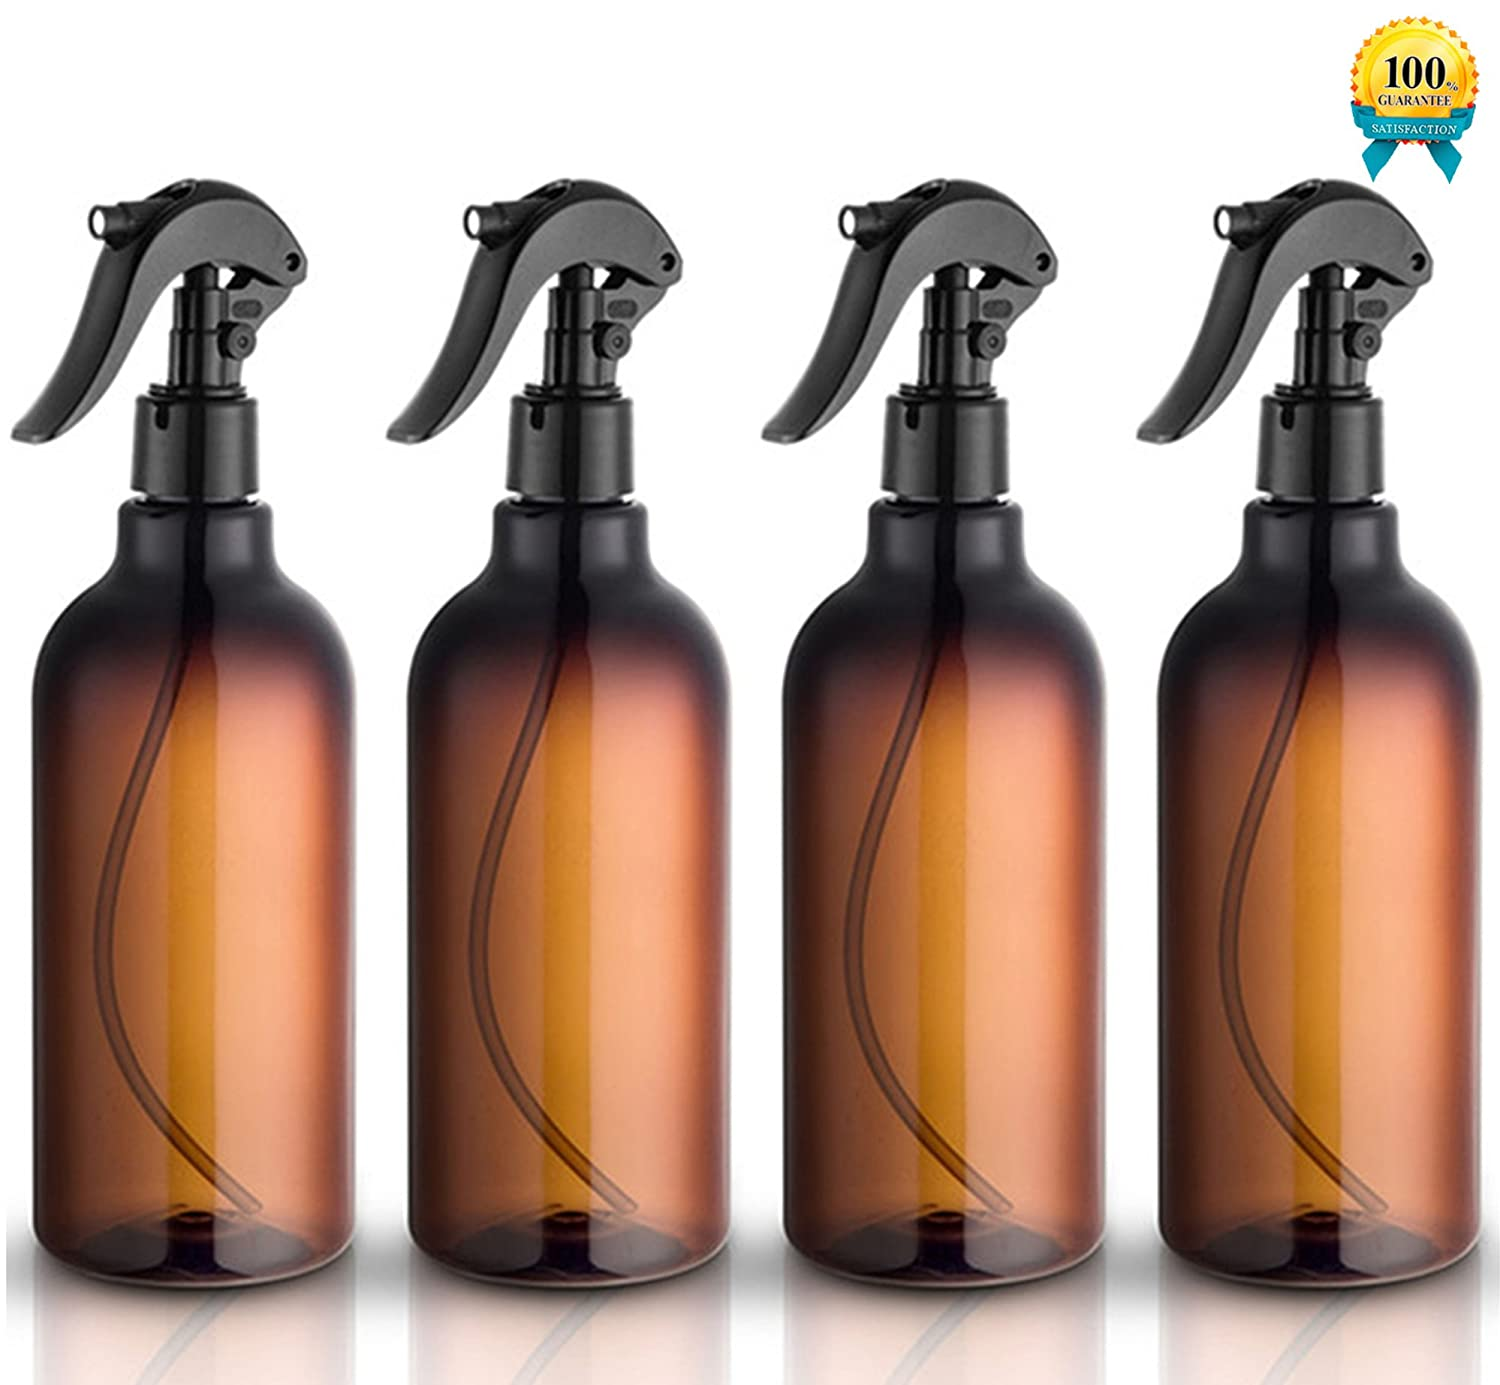 Spray Bottles, 16oz Plastic Spray Bottles with Black Fine Mist Sprayers Refillable Container for Essential Oils, Cleaning, Kitchen, Garden, Hair by Household Sprayer(4 pack) householdsprayer